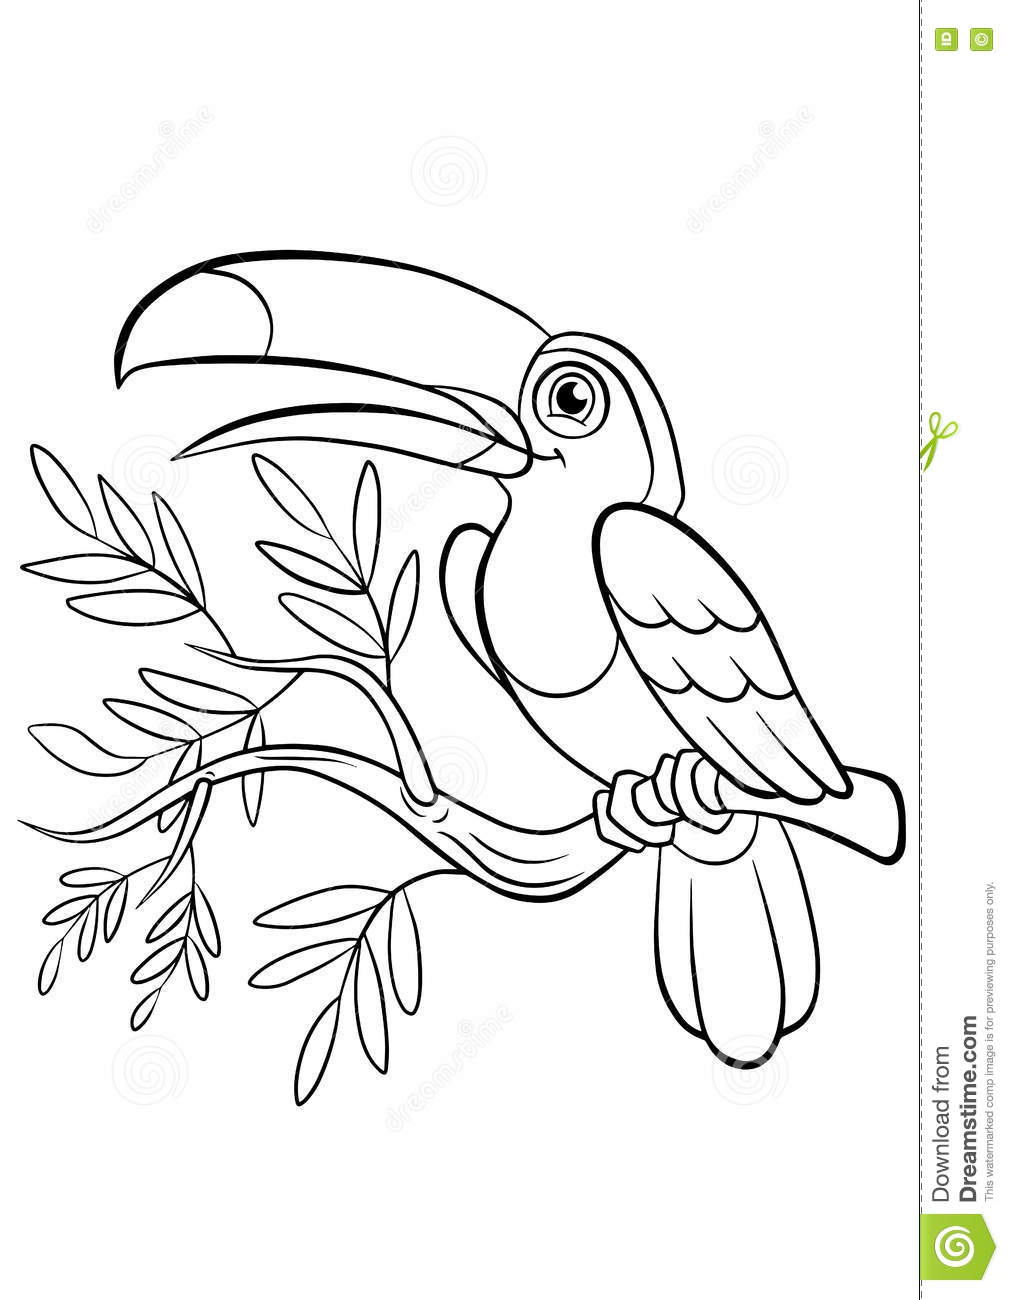 Banch Birds Coloring Cute Little Pages Sits Smiles Toucan